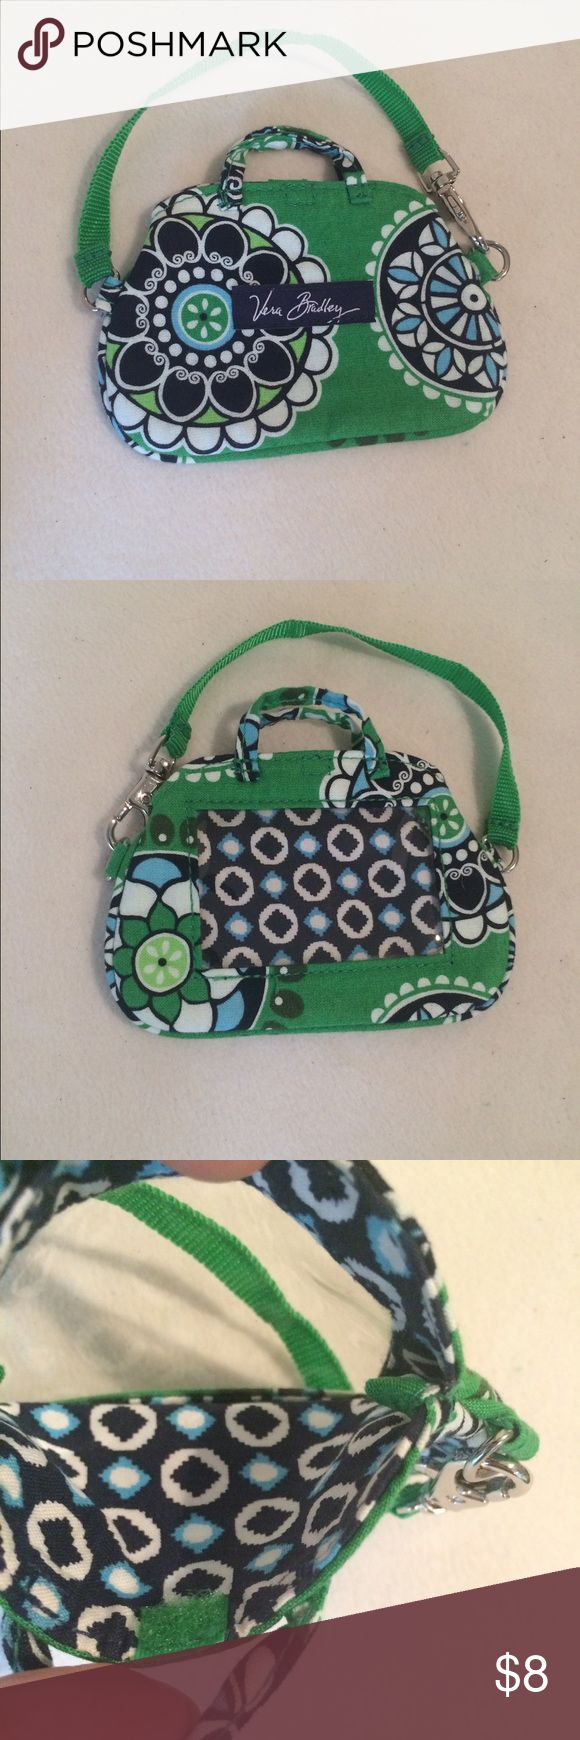 Vera Bradley Zip ID Case Reasonable offers considered 🛍 Bundle 2 or more items and save! 🎁 Bundle 5 items and I will reimburse the shipping fee 🎉. Cupcakes-Green pattern. Zippered close. 4.5 inch length, 1 inch width, 3 inch height. Strap attached. Preloved and in good condition. Vera Bradley Bags